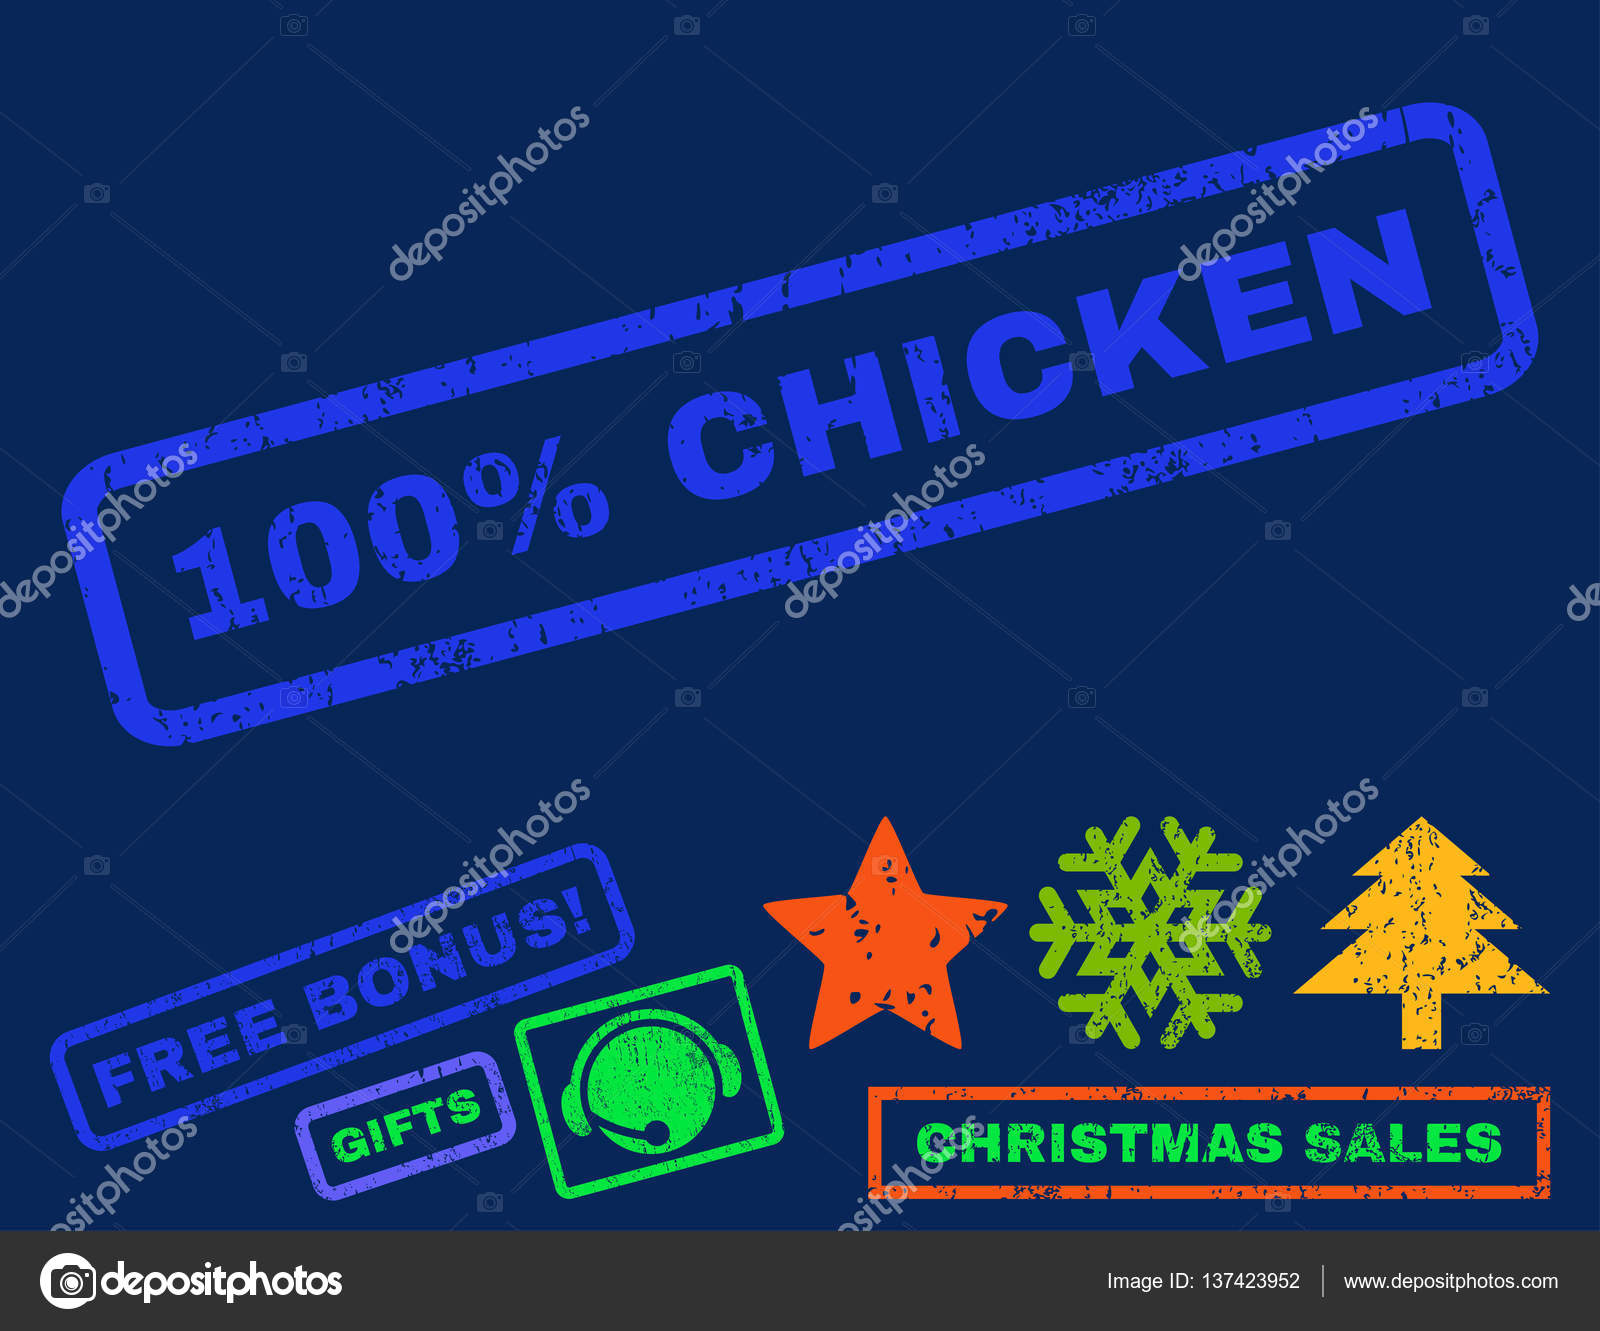 100 Percent Chicken Rubber Stamp Stock Illustration